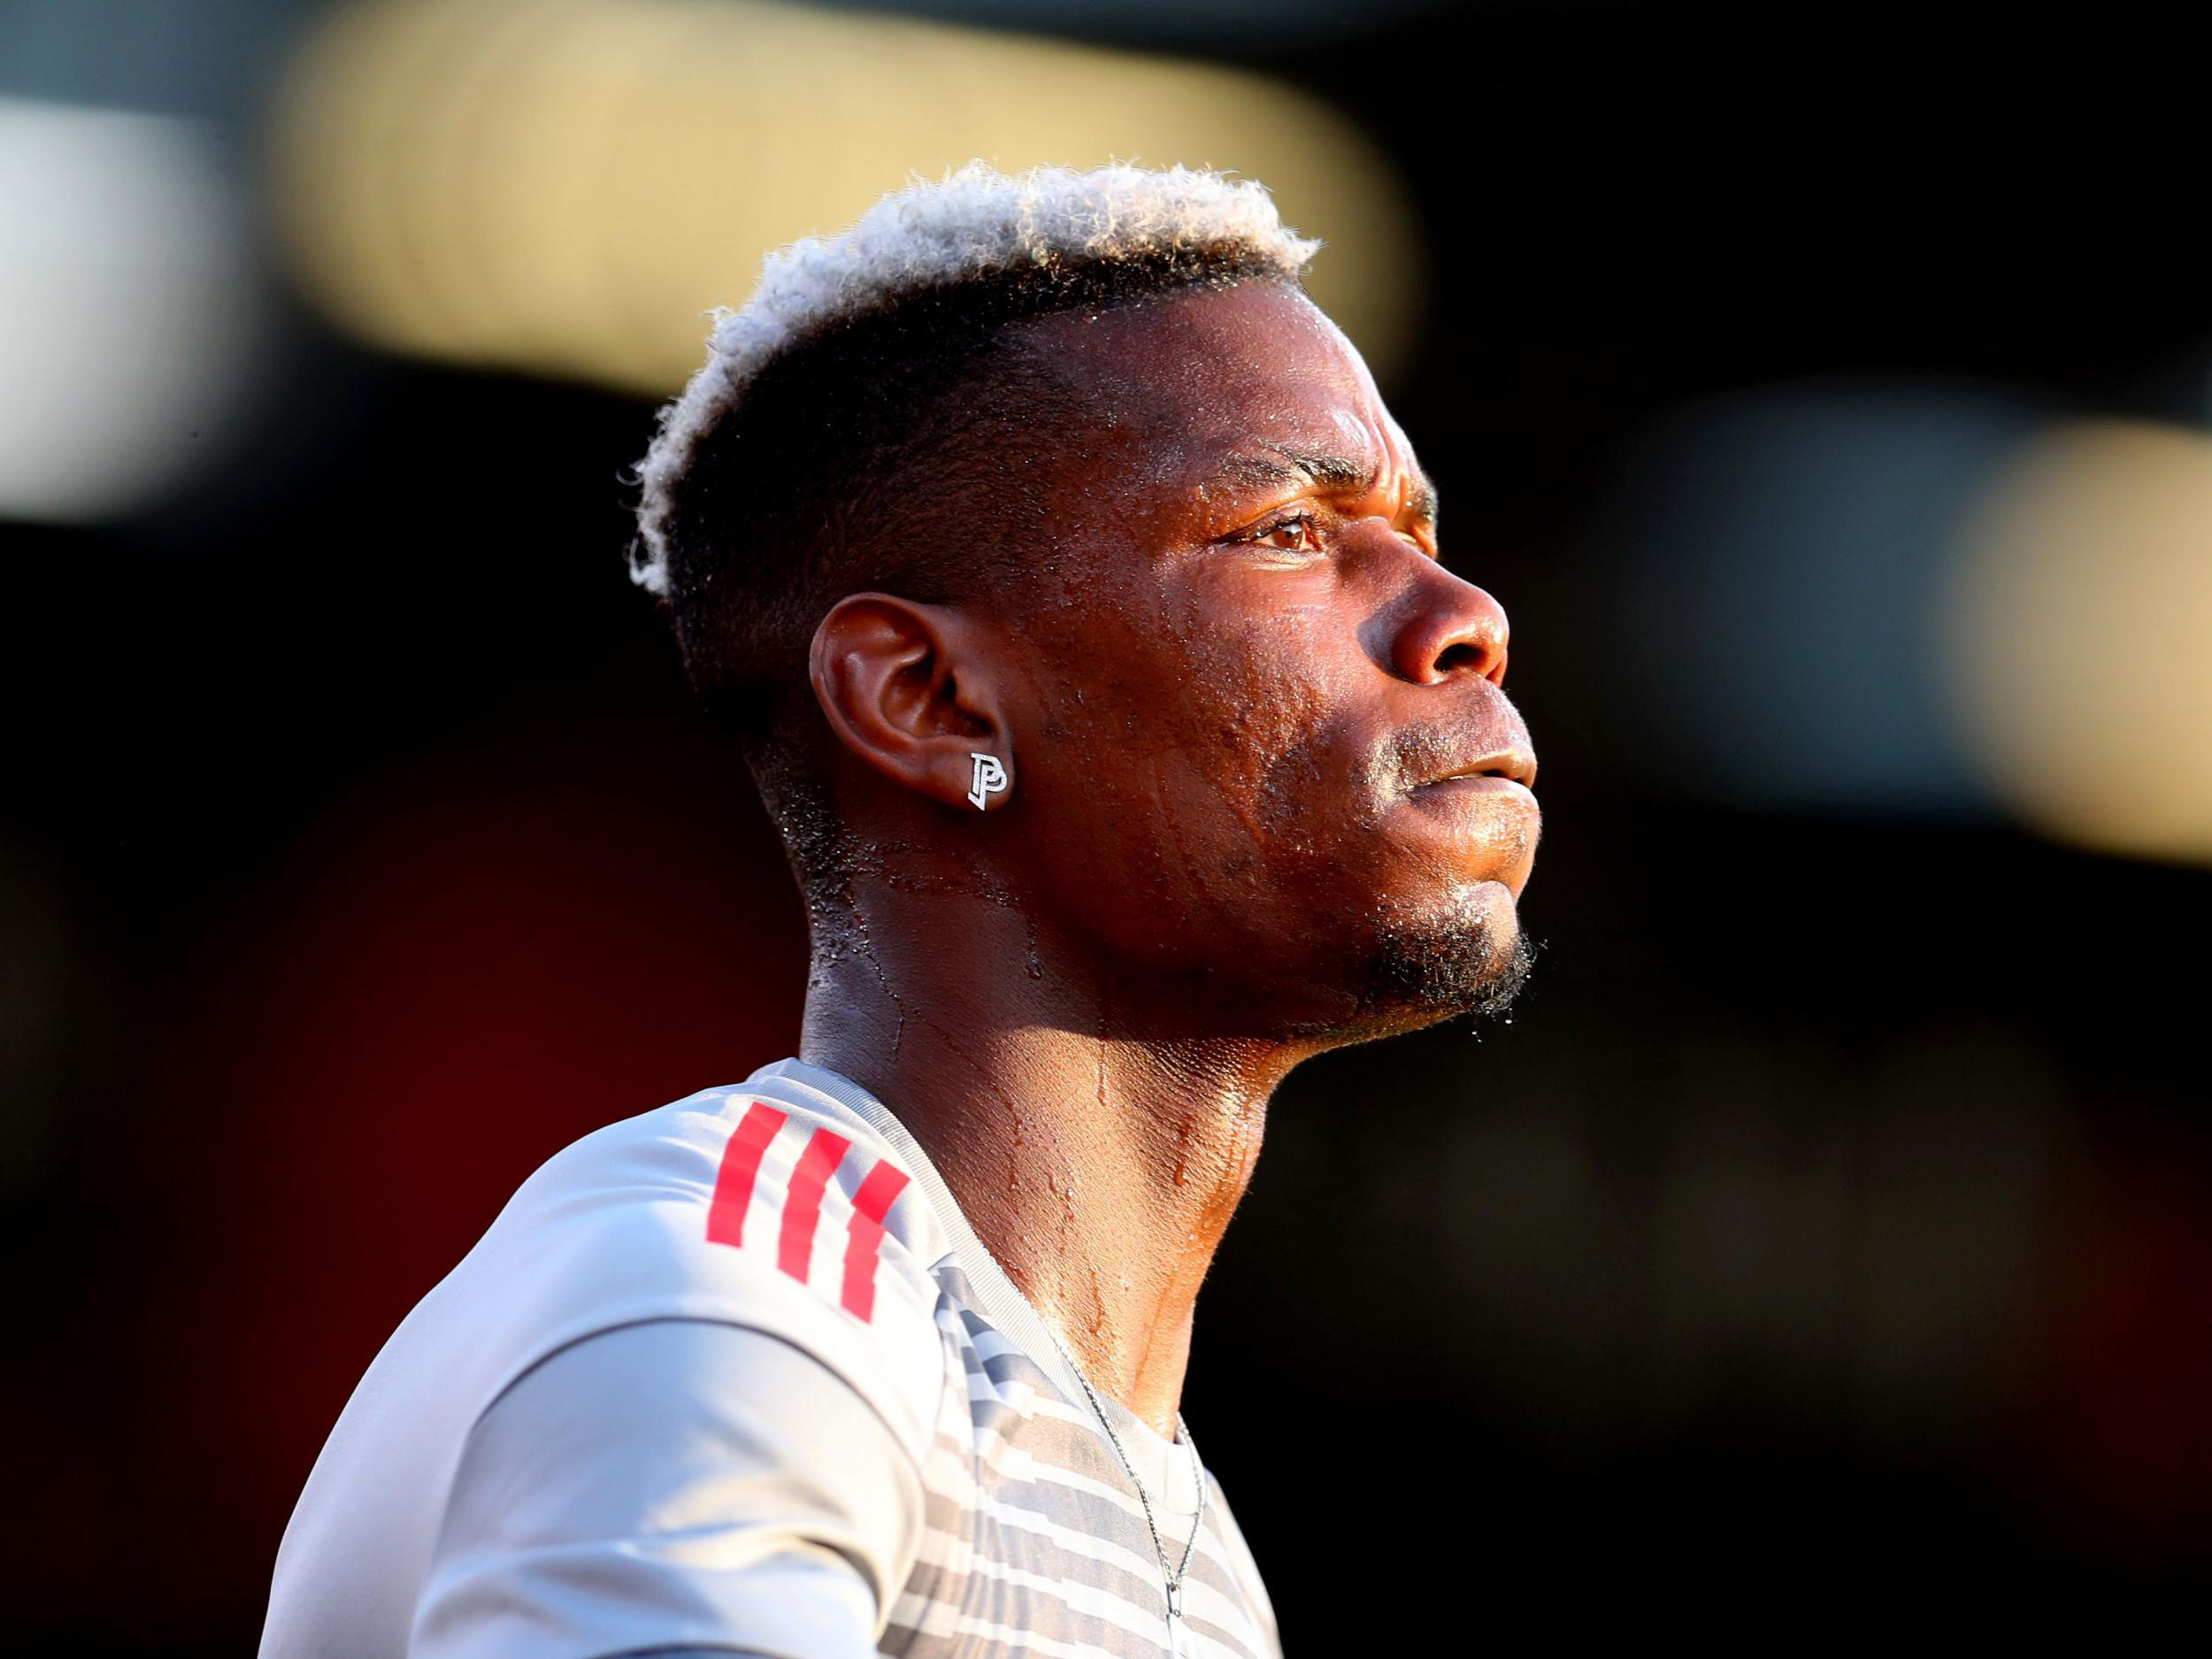 Jose Mourinho Defends Paul Pogba After Manchester United Star Branded Disrespectful By Paul Scholes The Independent